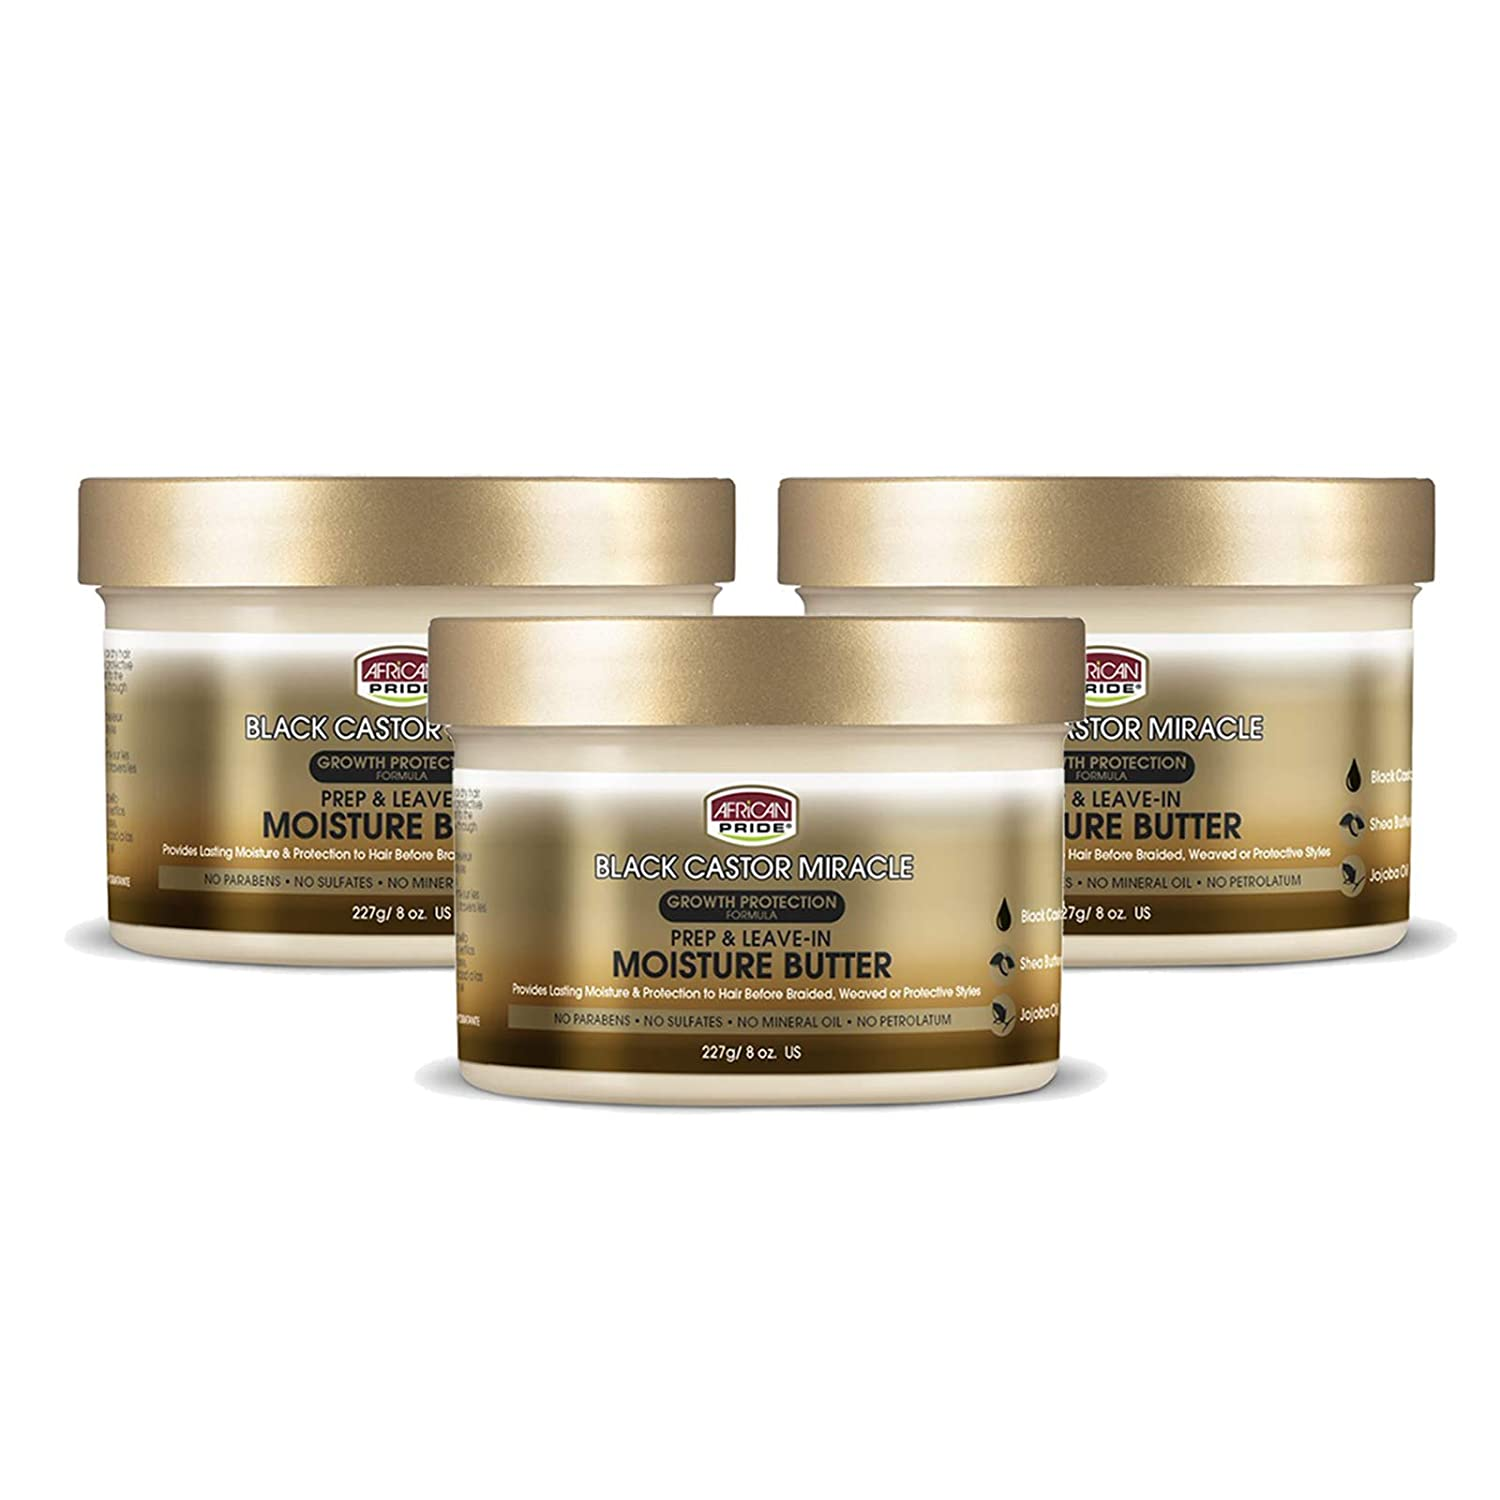 African Pride Black Castor Miracle Prep & Leave-In Moisture Butter (3 Pack) - Provides Lasting Moisture & Protection to Hair, Contains Black Castor Oil, Shea Butter and Jojoba Oil, 8 oz